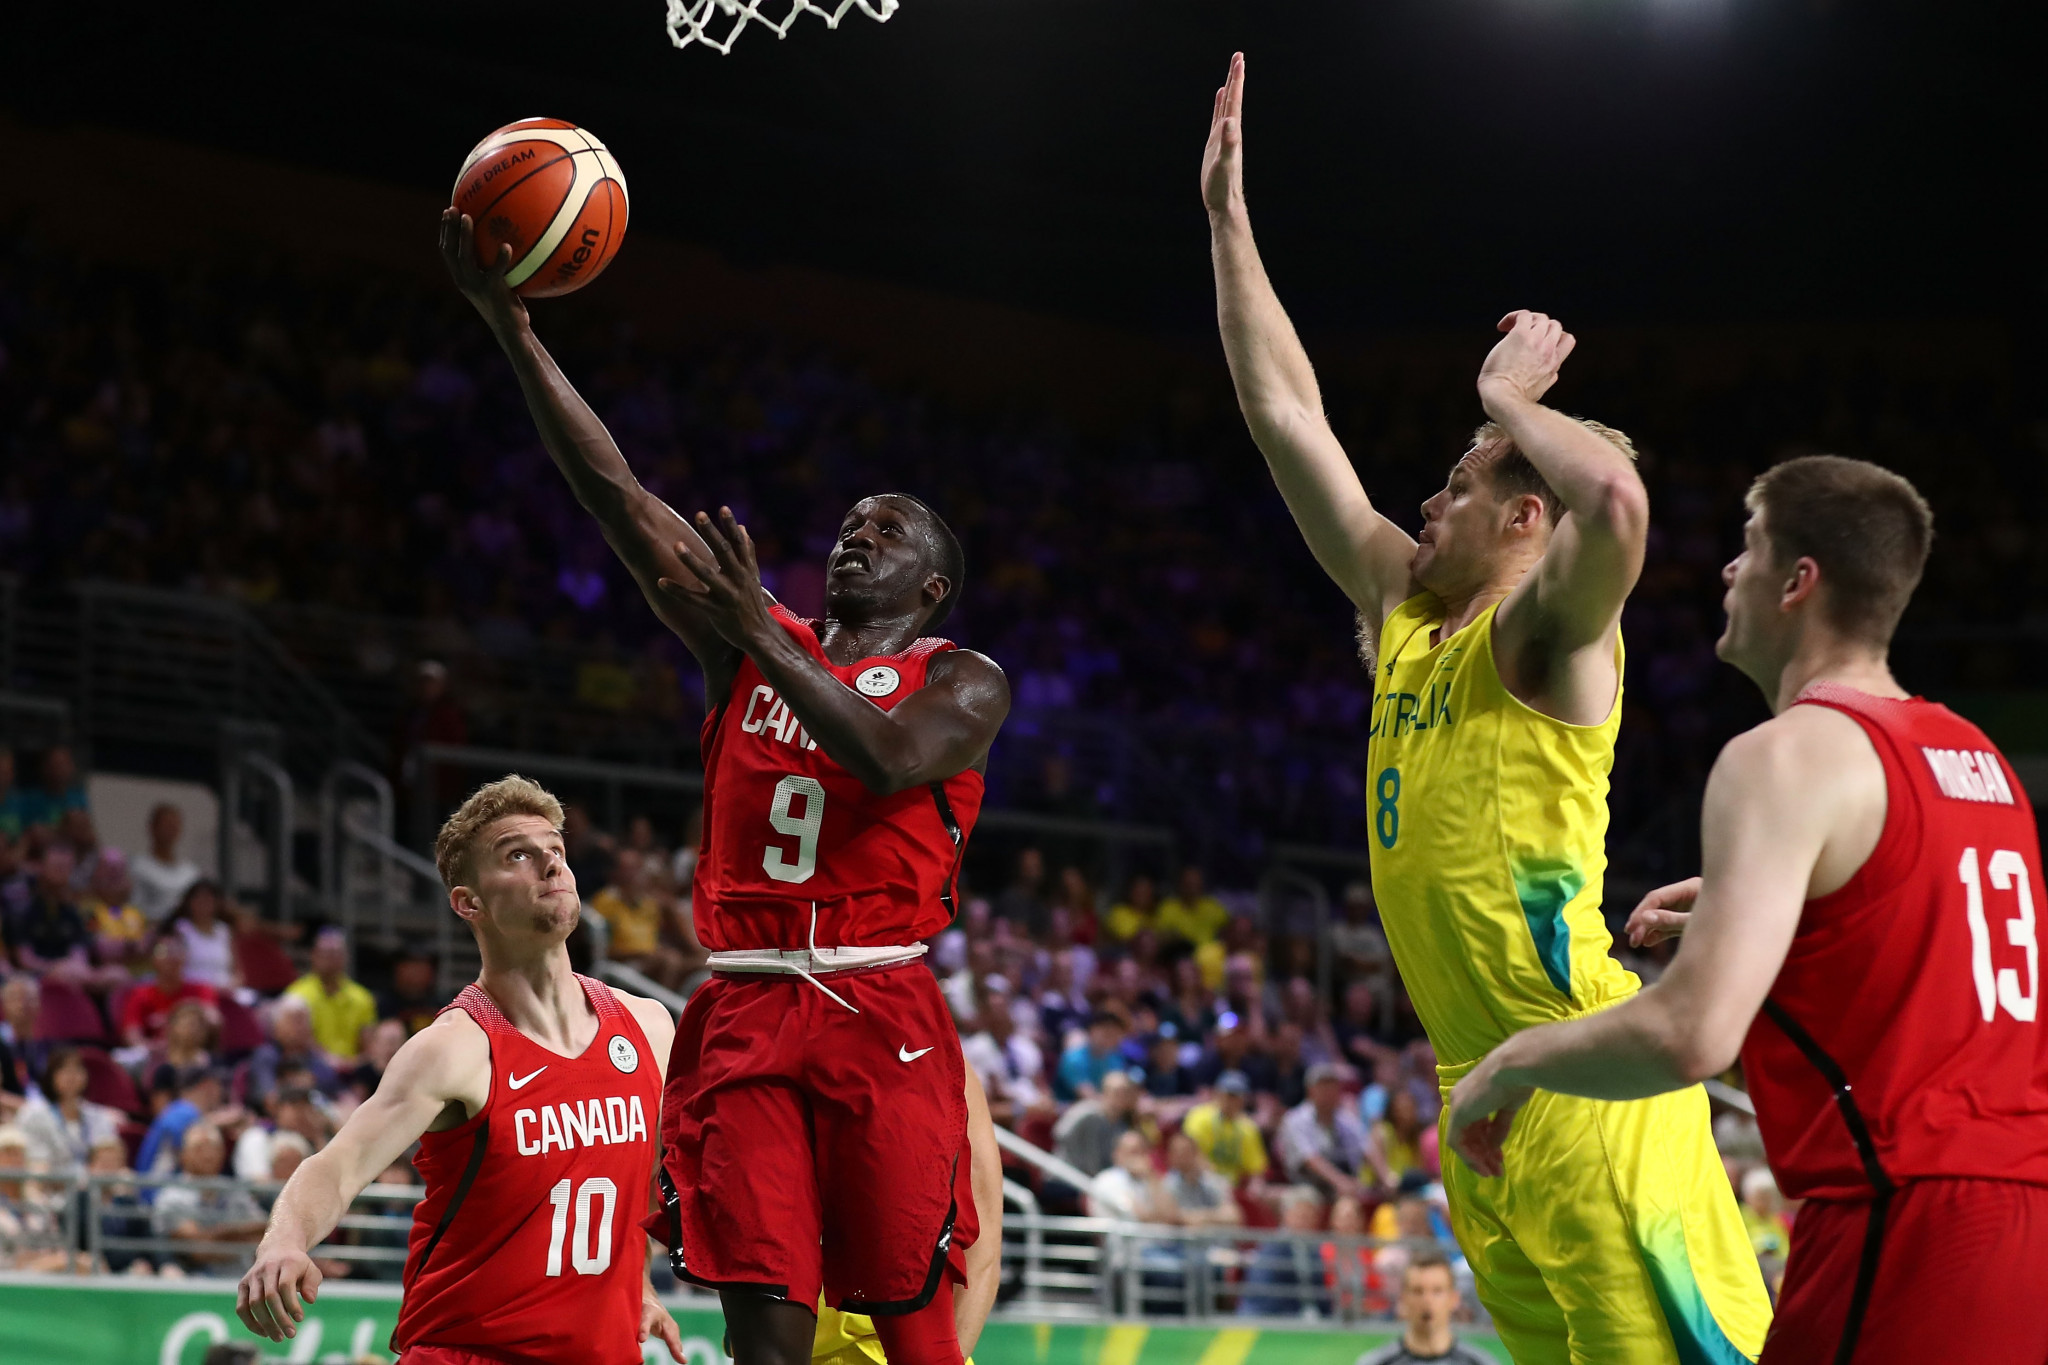 Organisers request for fans at Olympic basketball qualifiers in Canada